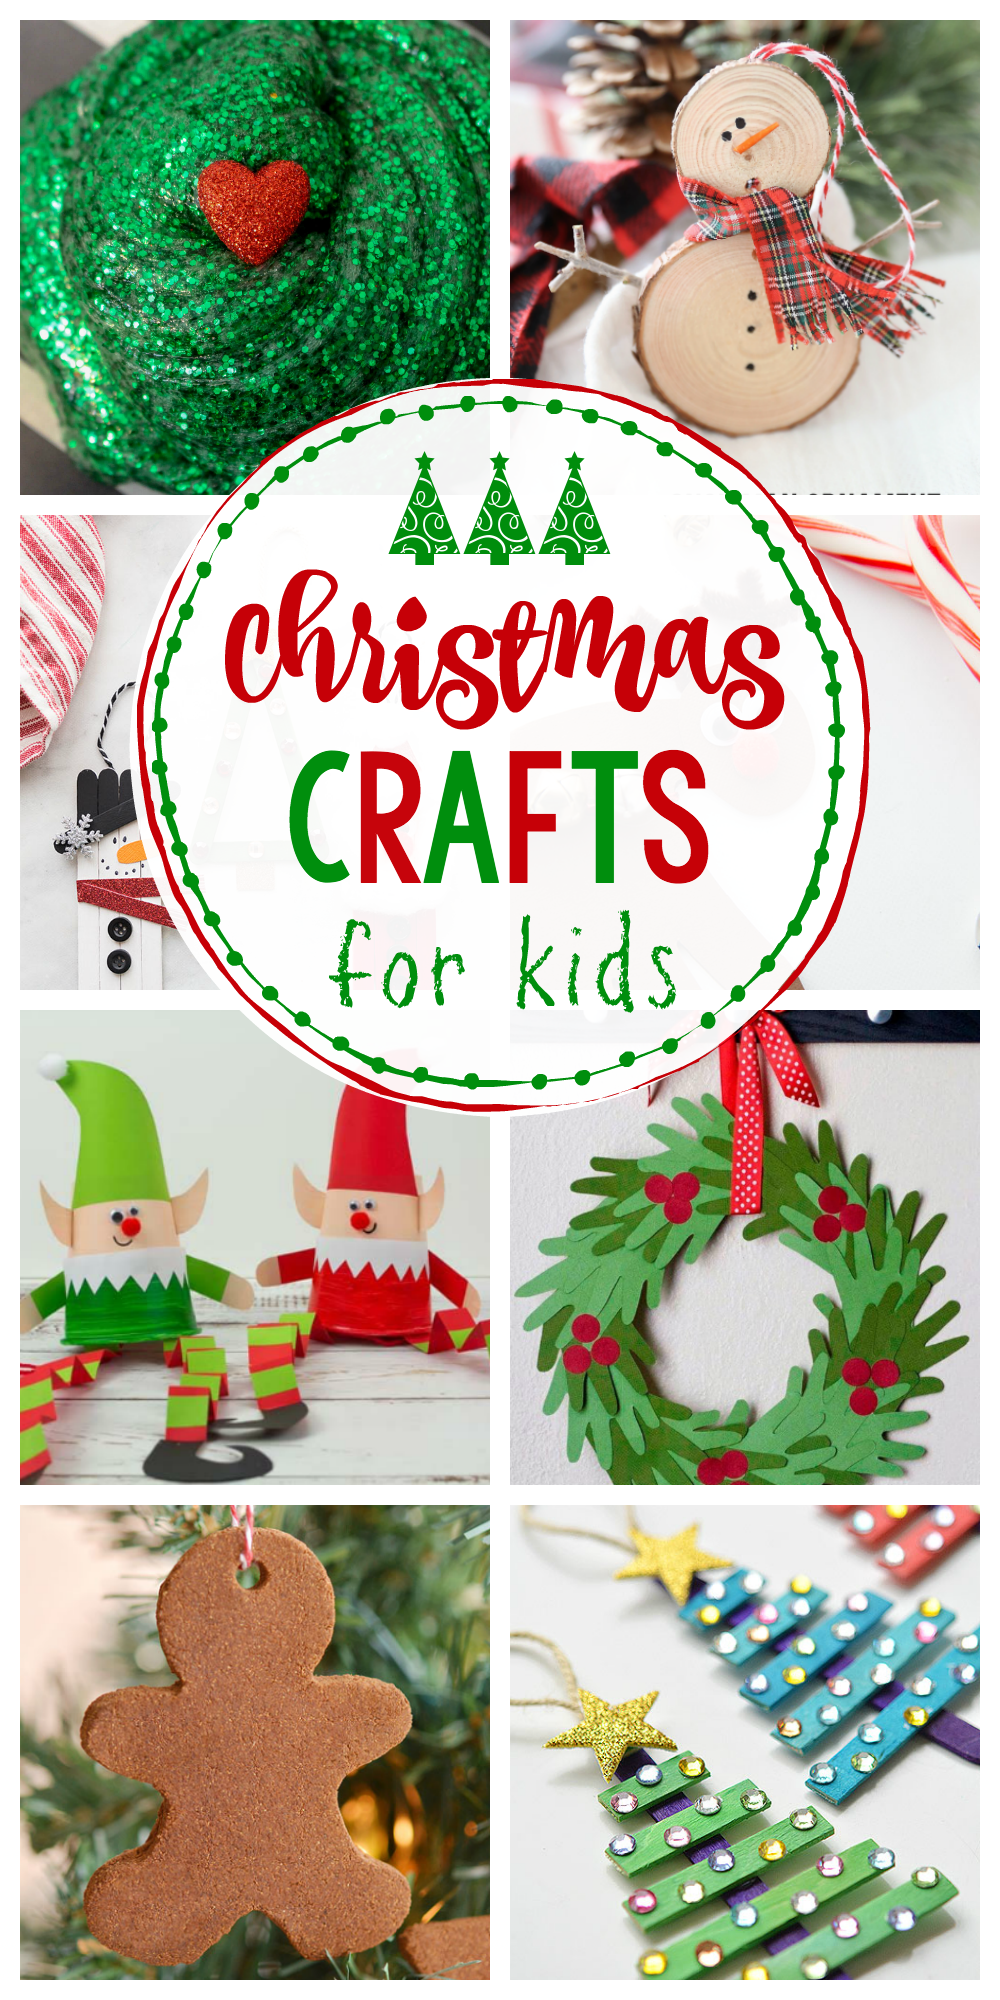 Easy Christmas Crafts for Kids - Crazy Little Projects